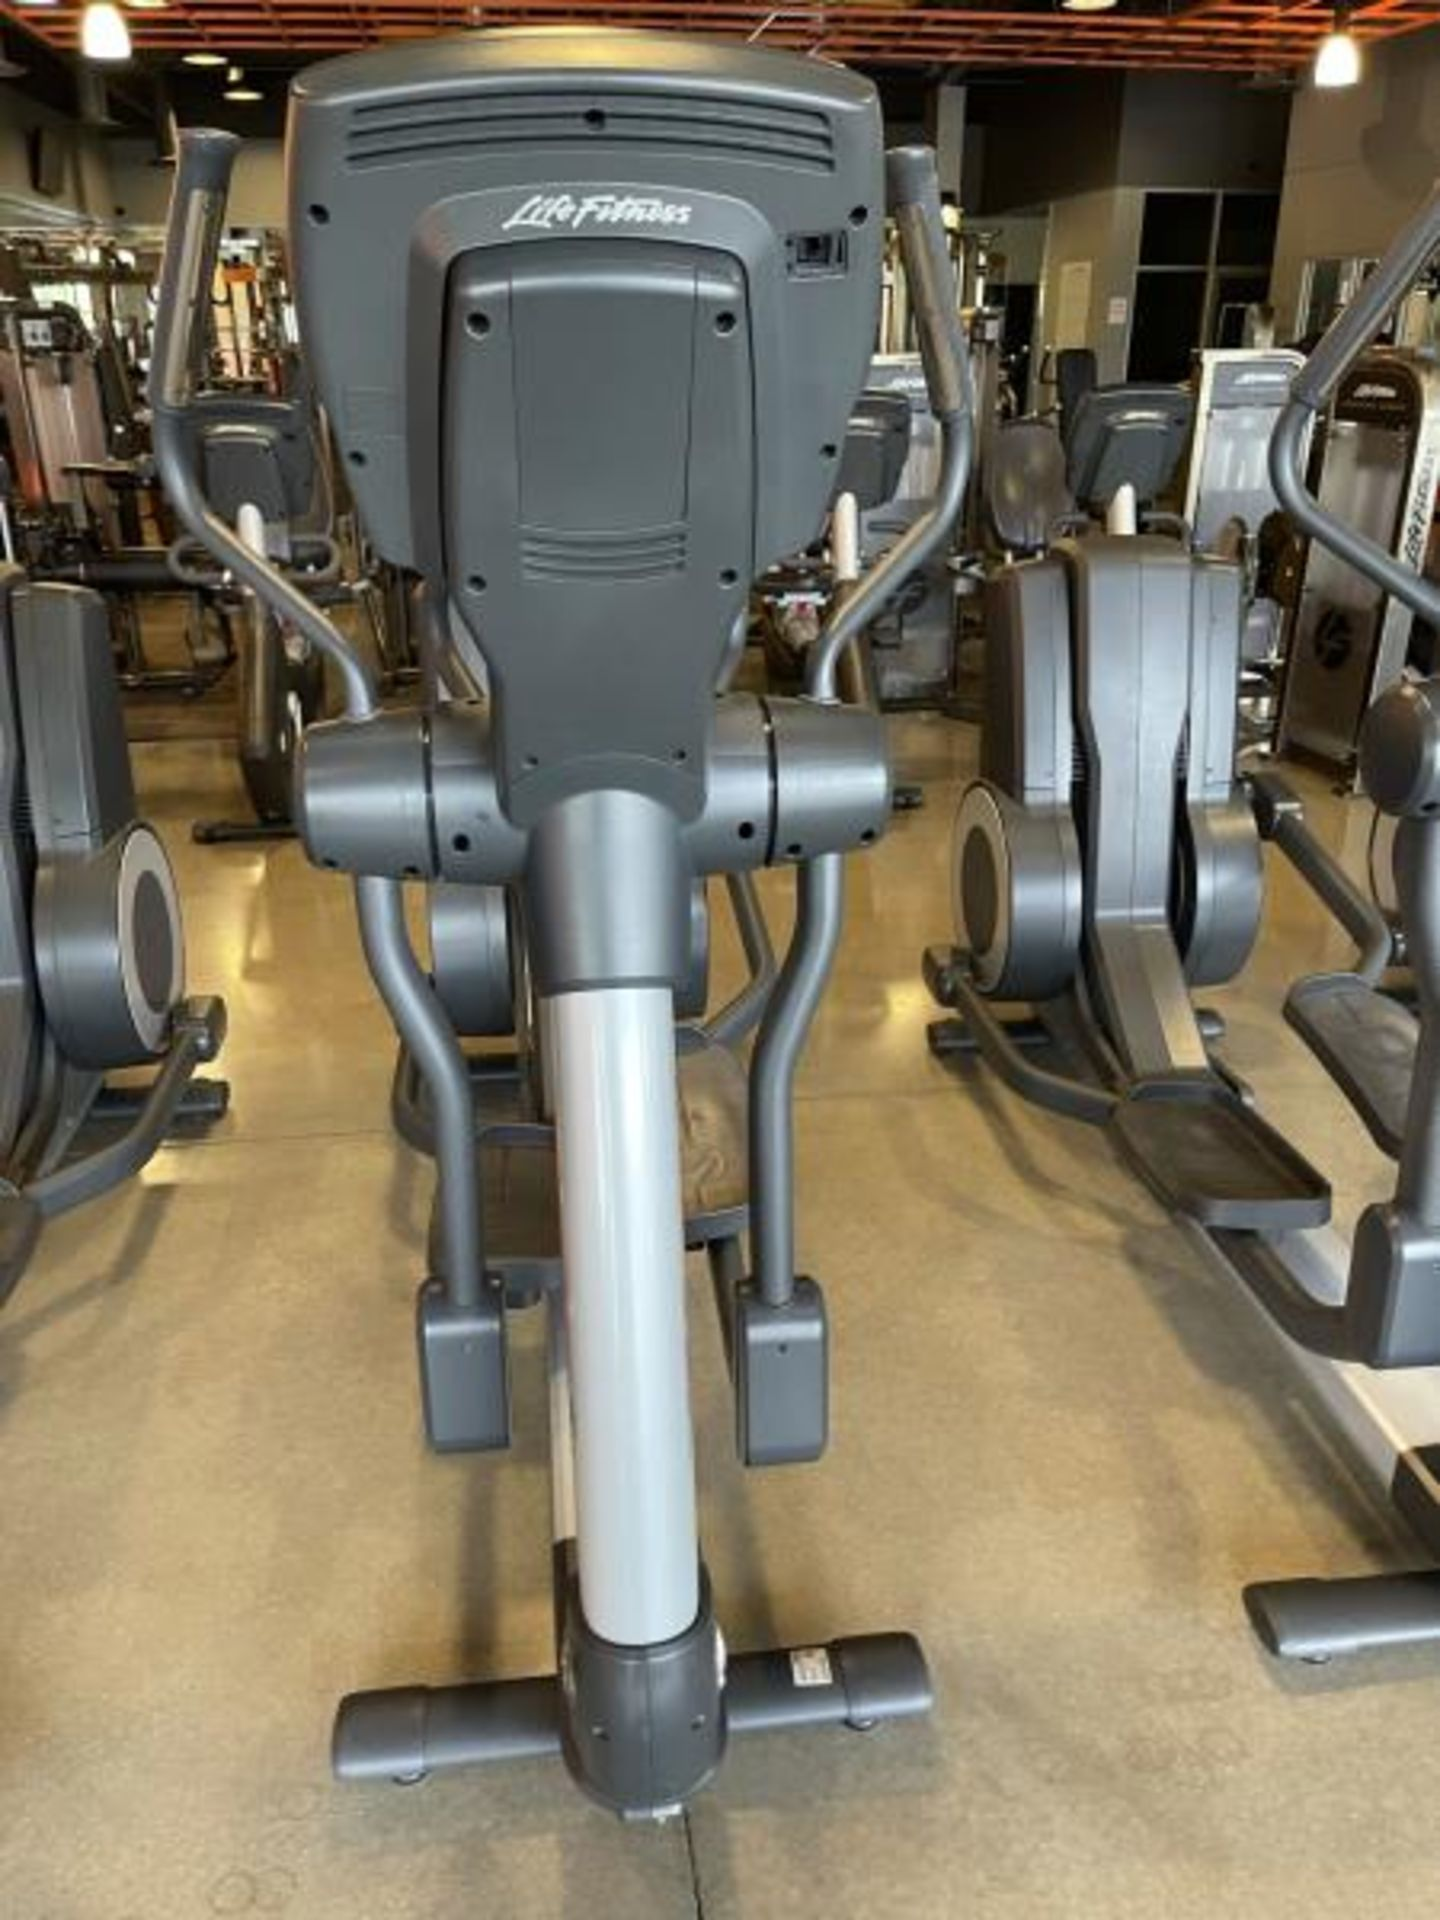 Life Fitness Elliptical M: 95X Has Out Of Order Sign - Image 3 of 4